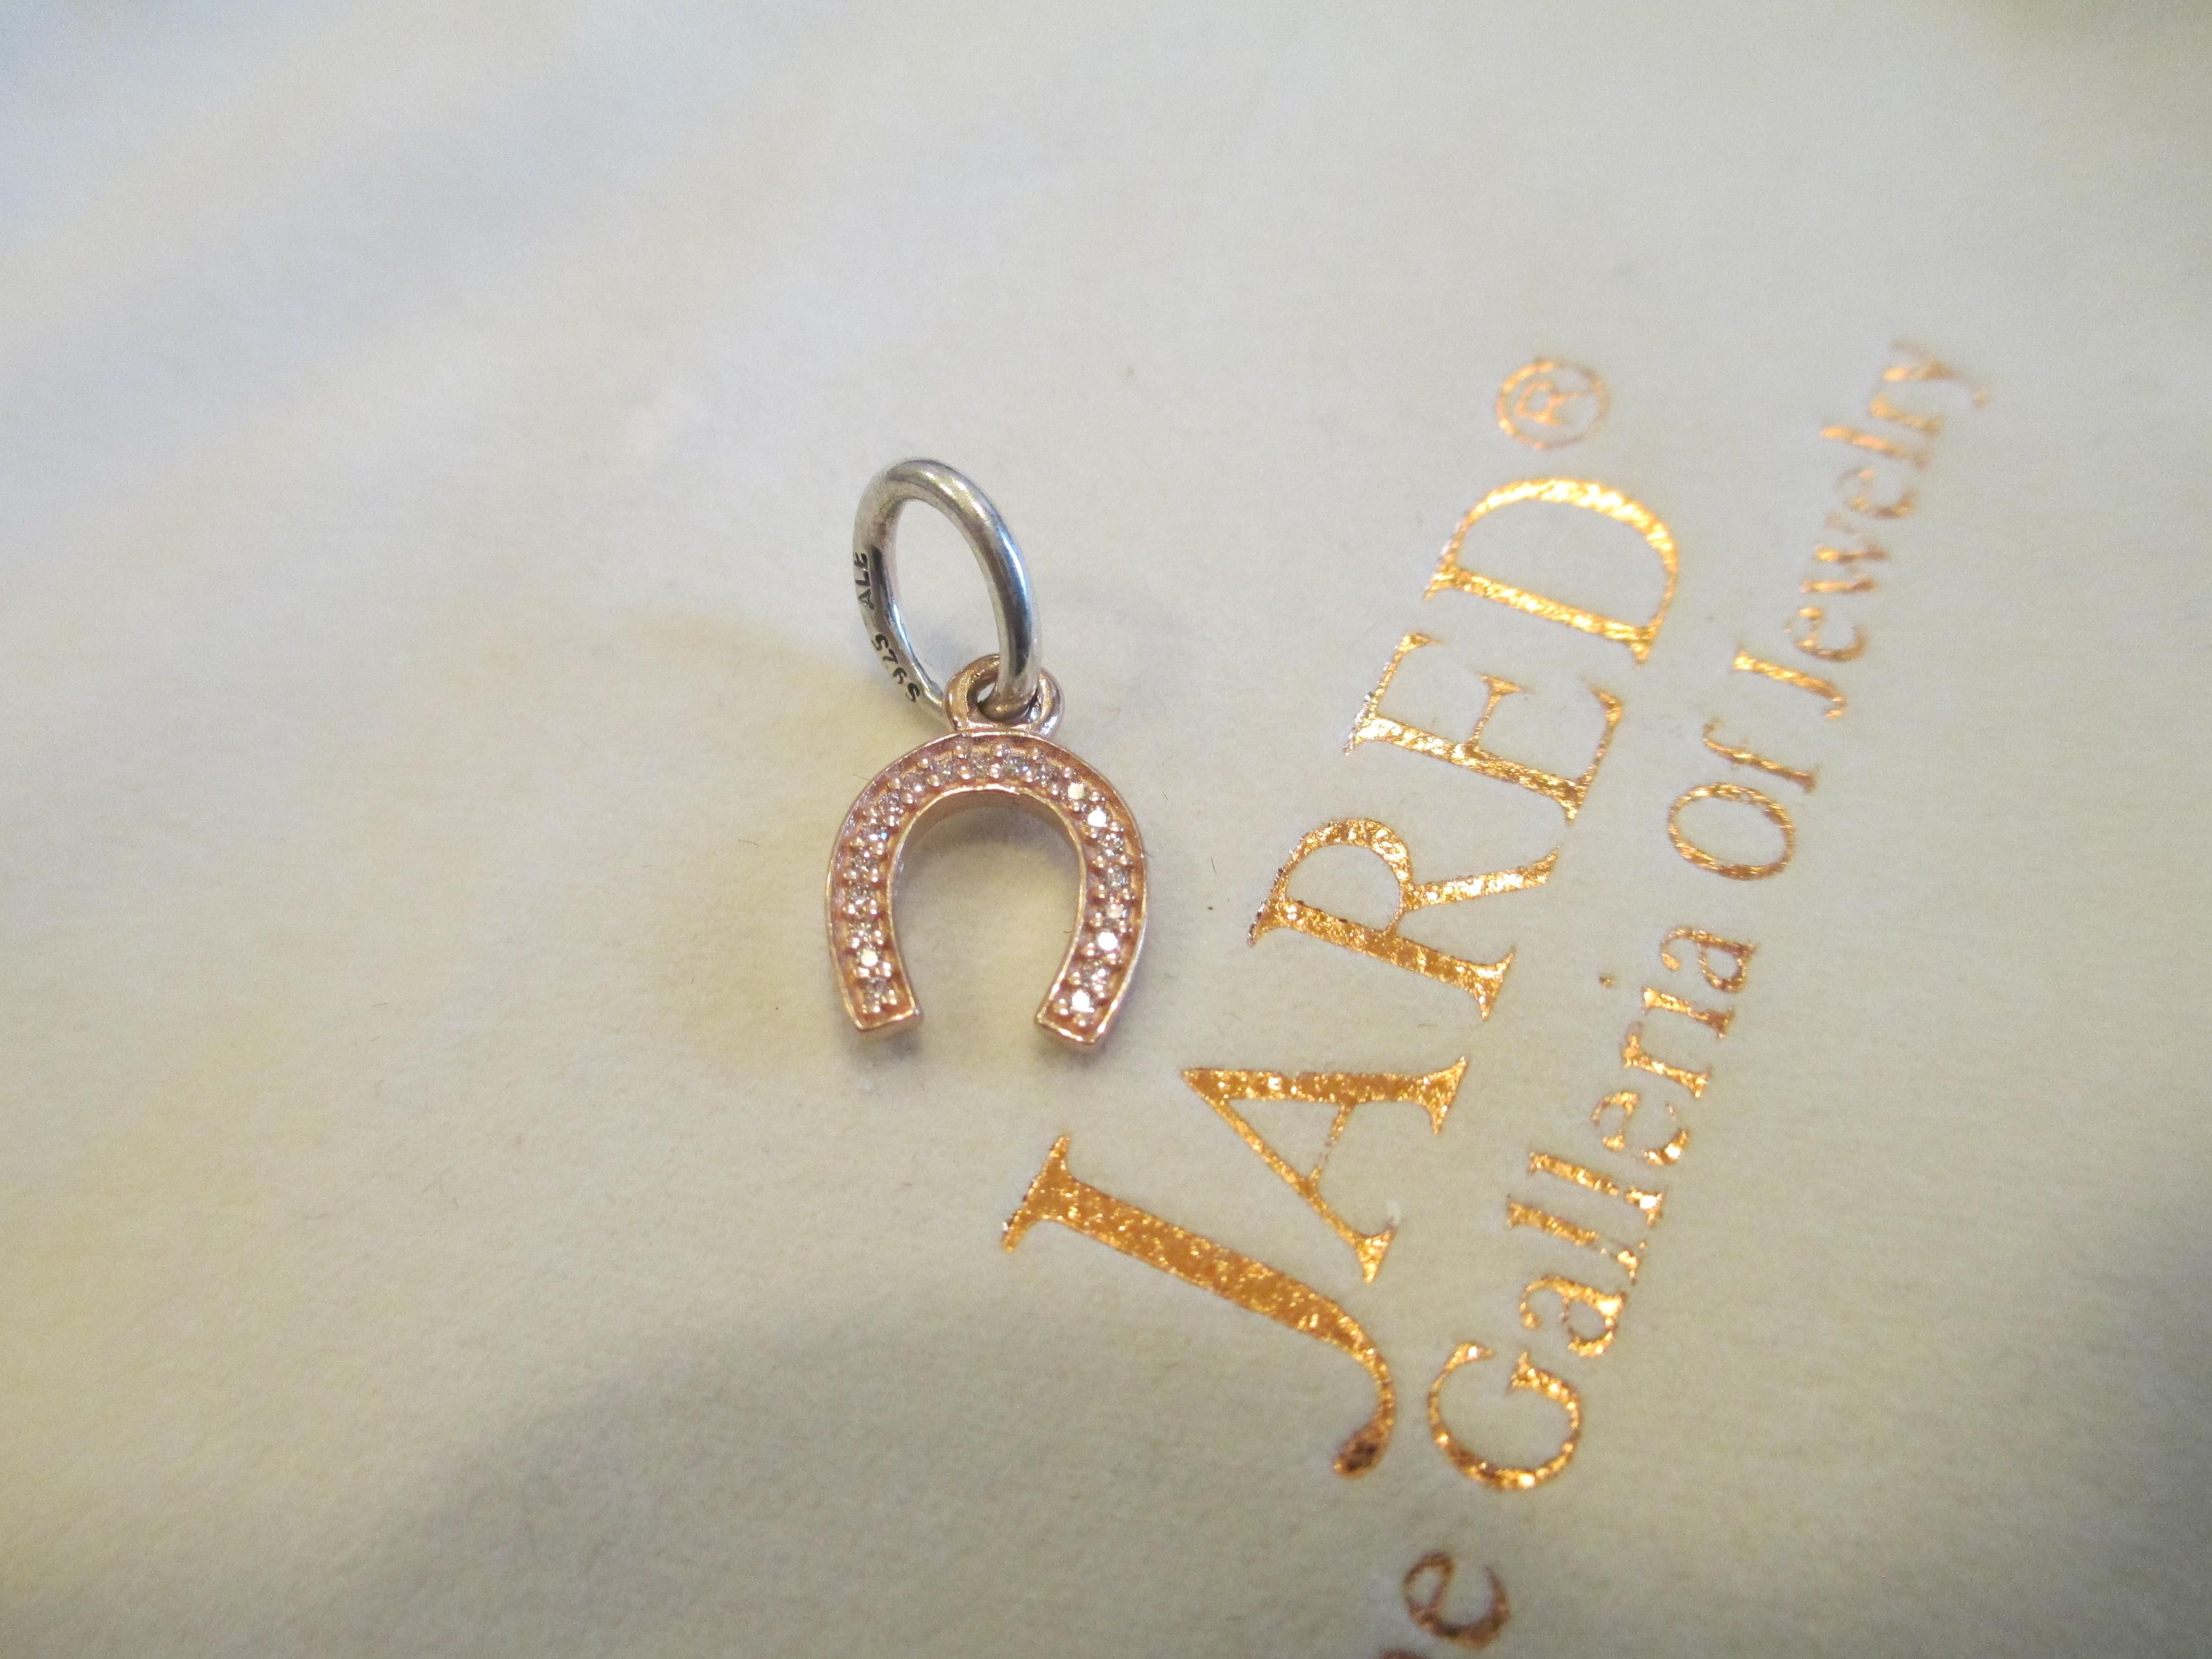 fc324b021 Authentic Pandora Retired 925 14kR 791356cz Symbol of Luck horseshoe  dangle. Free shipping and guaranteed